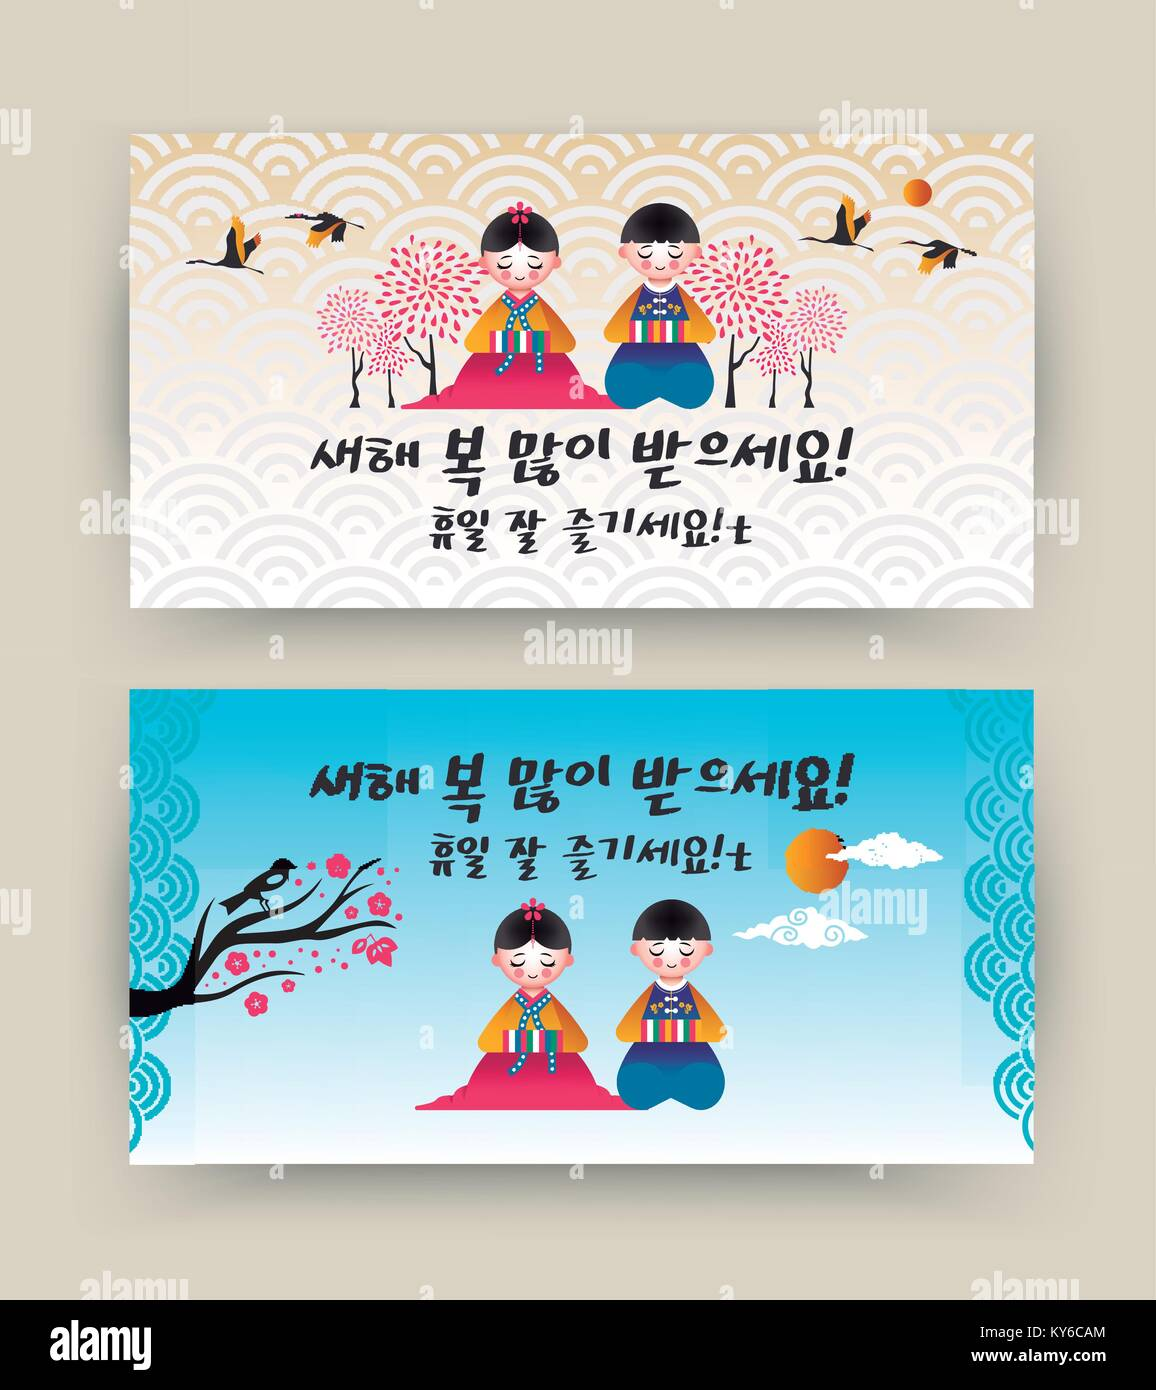 Happy korean new year 2018 banner set with cute kids in hanbok dress happy korean new year 2018 banner set with cute kids in hanbok dress bowing to the holidays includes traditional calligraphy message for good fortune m4hsunfo